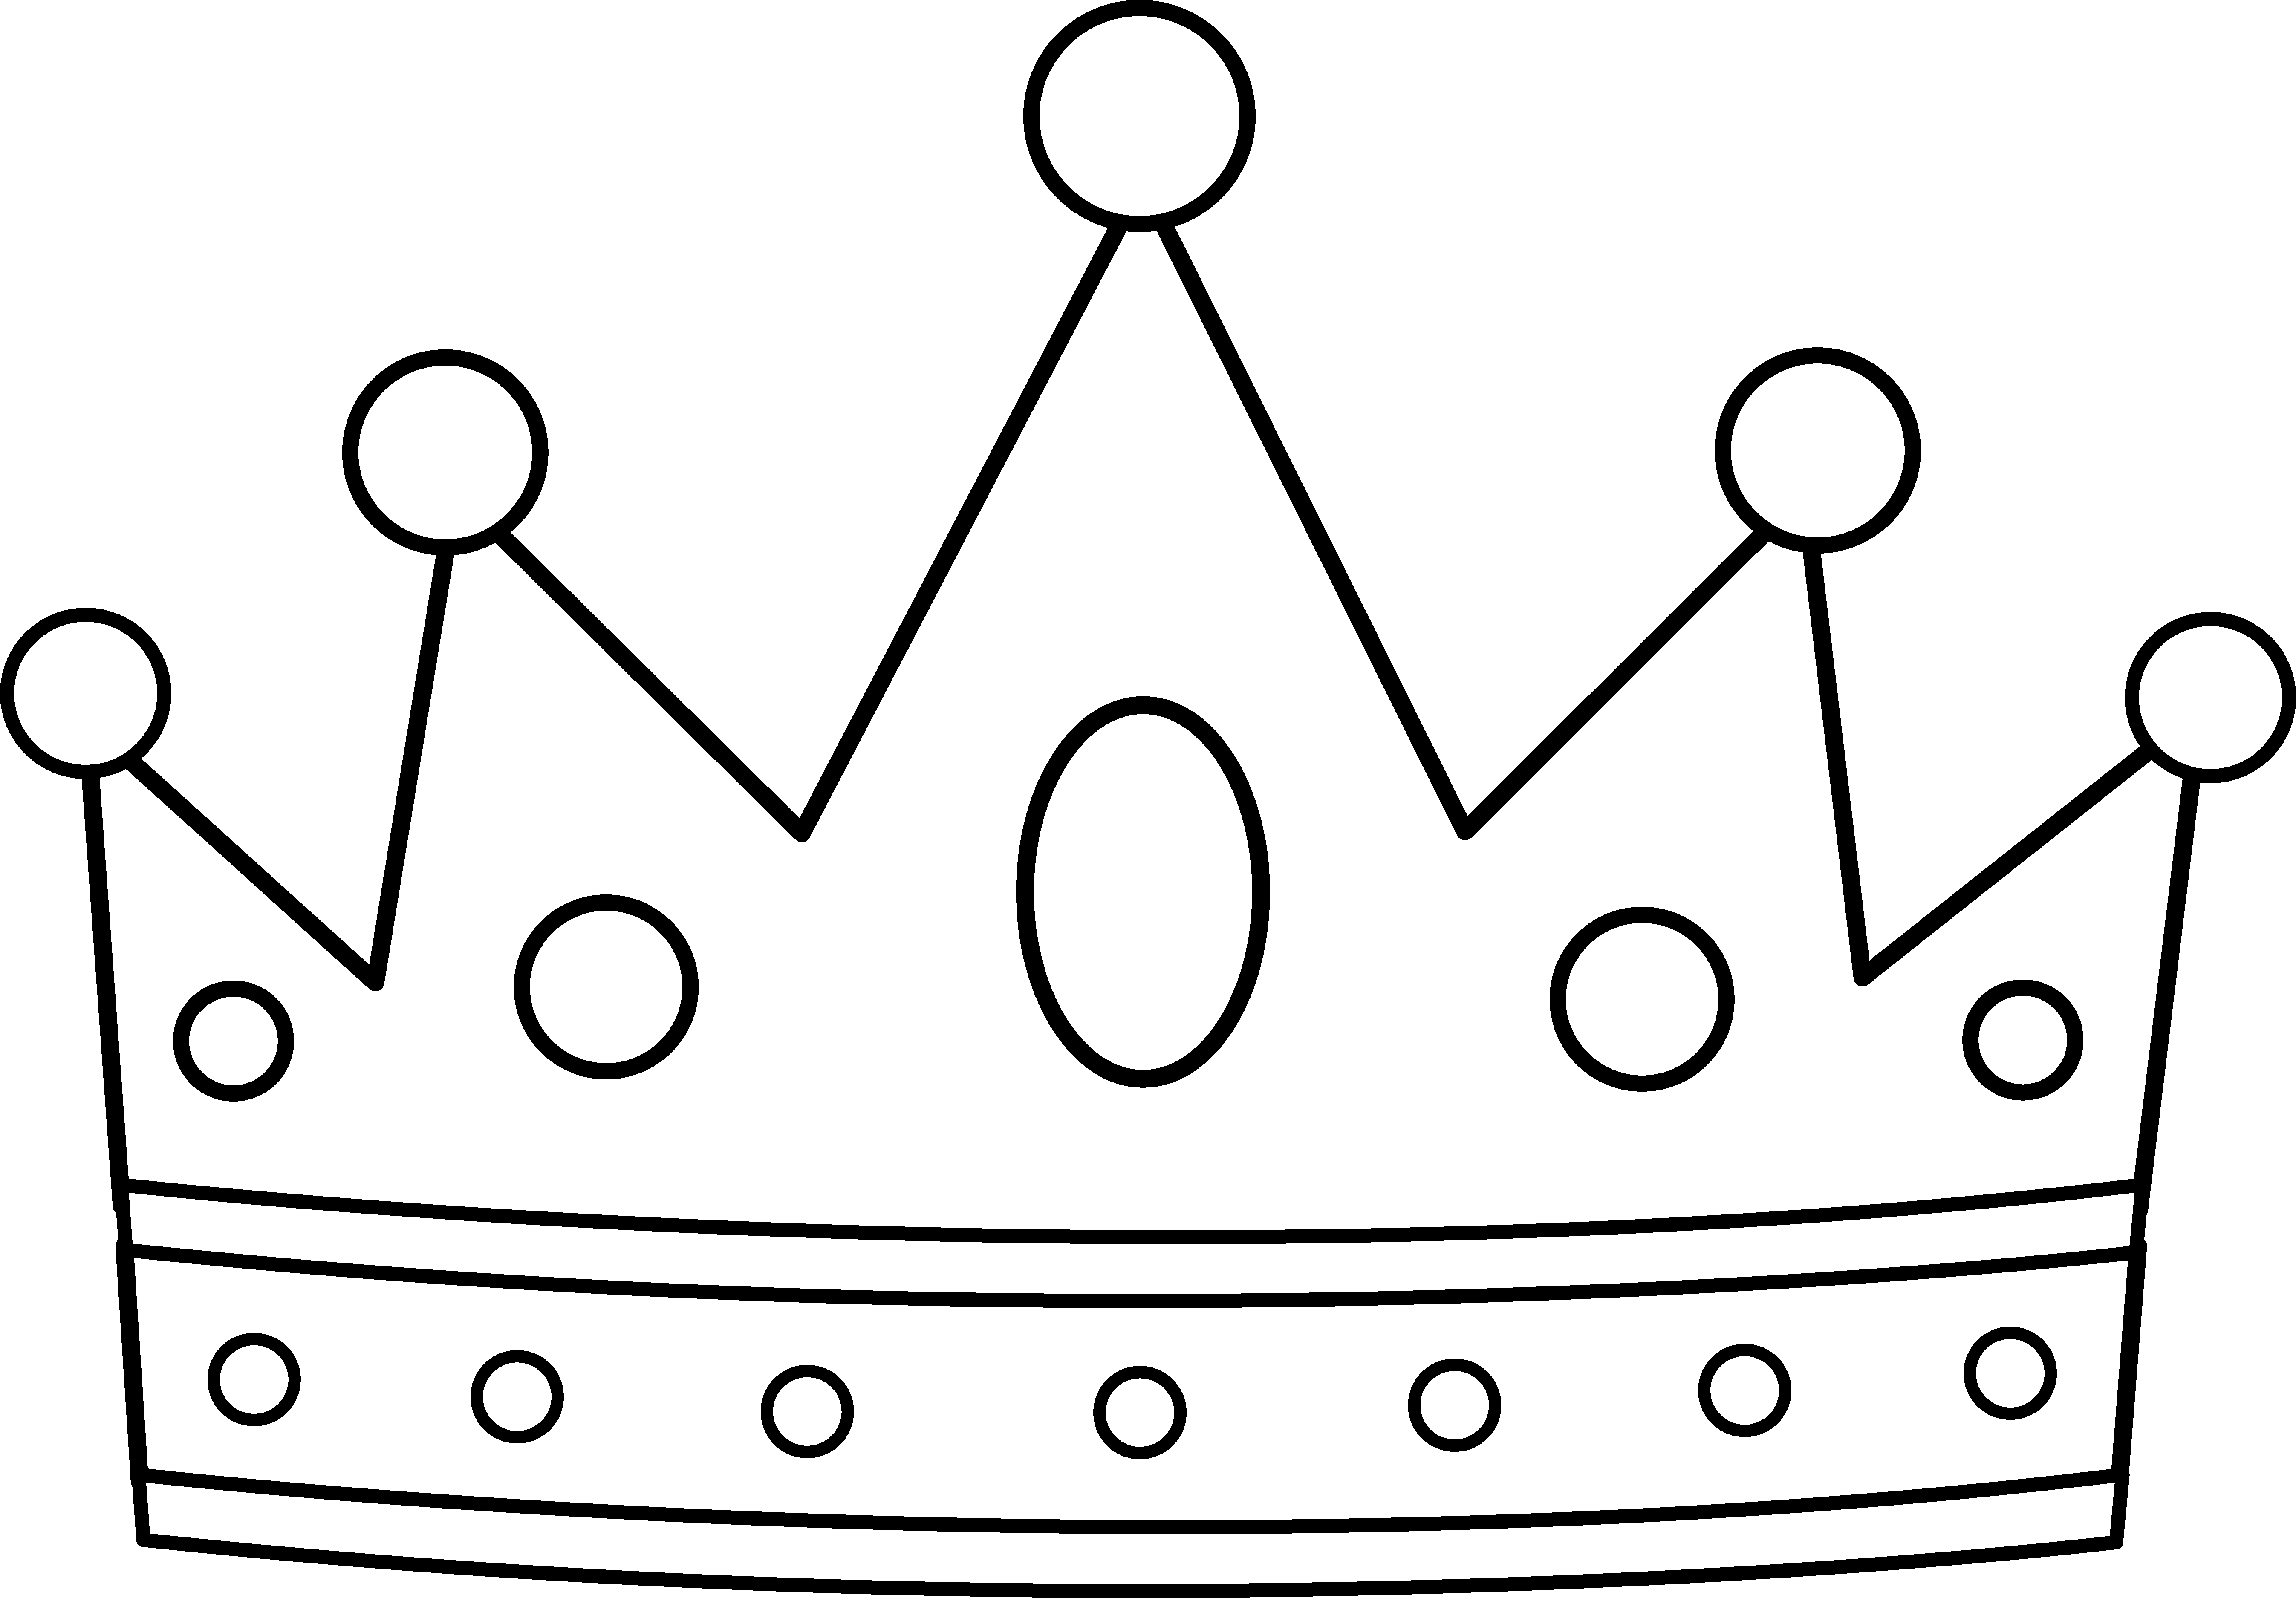 Single crown clipart free image black and white library Free Royal Crown Picture, Download Free Clip Art, Free Clip ... image black and white library